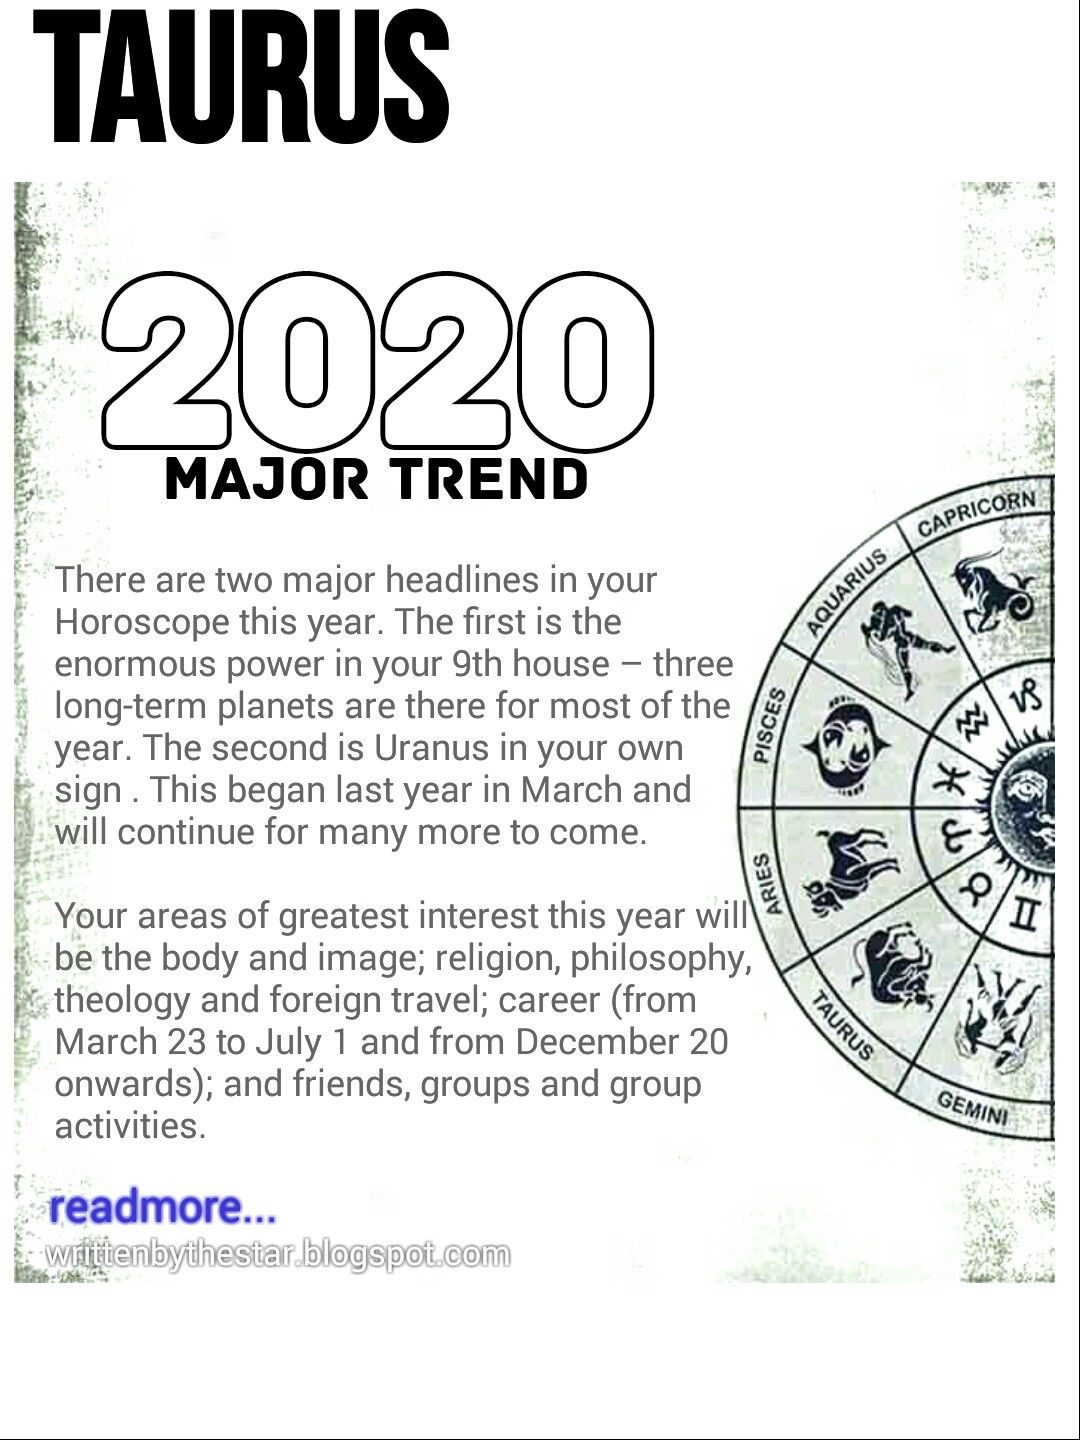 Taurus Major Trend Forecast